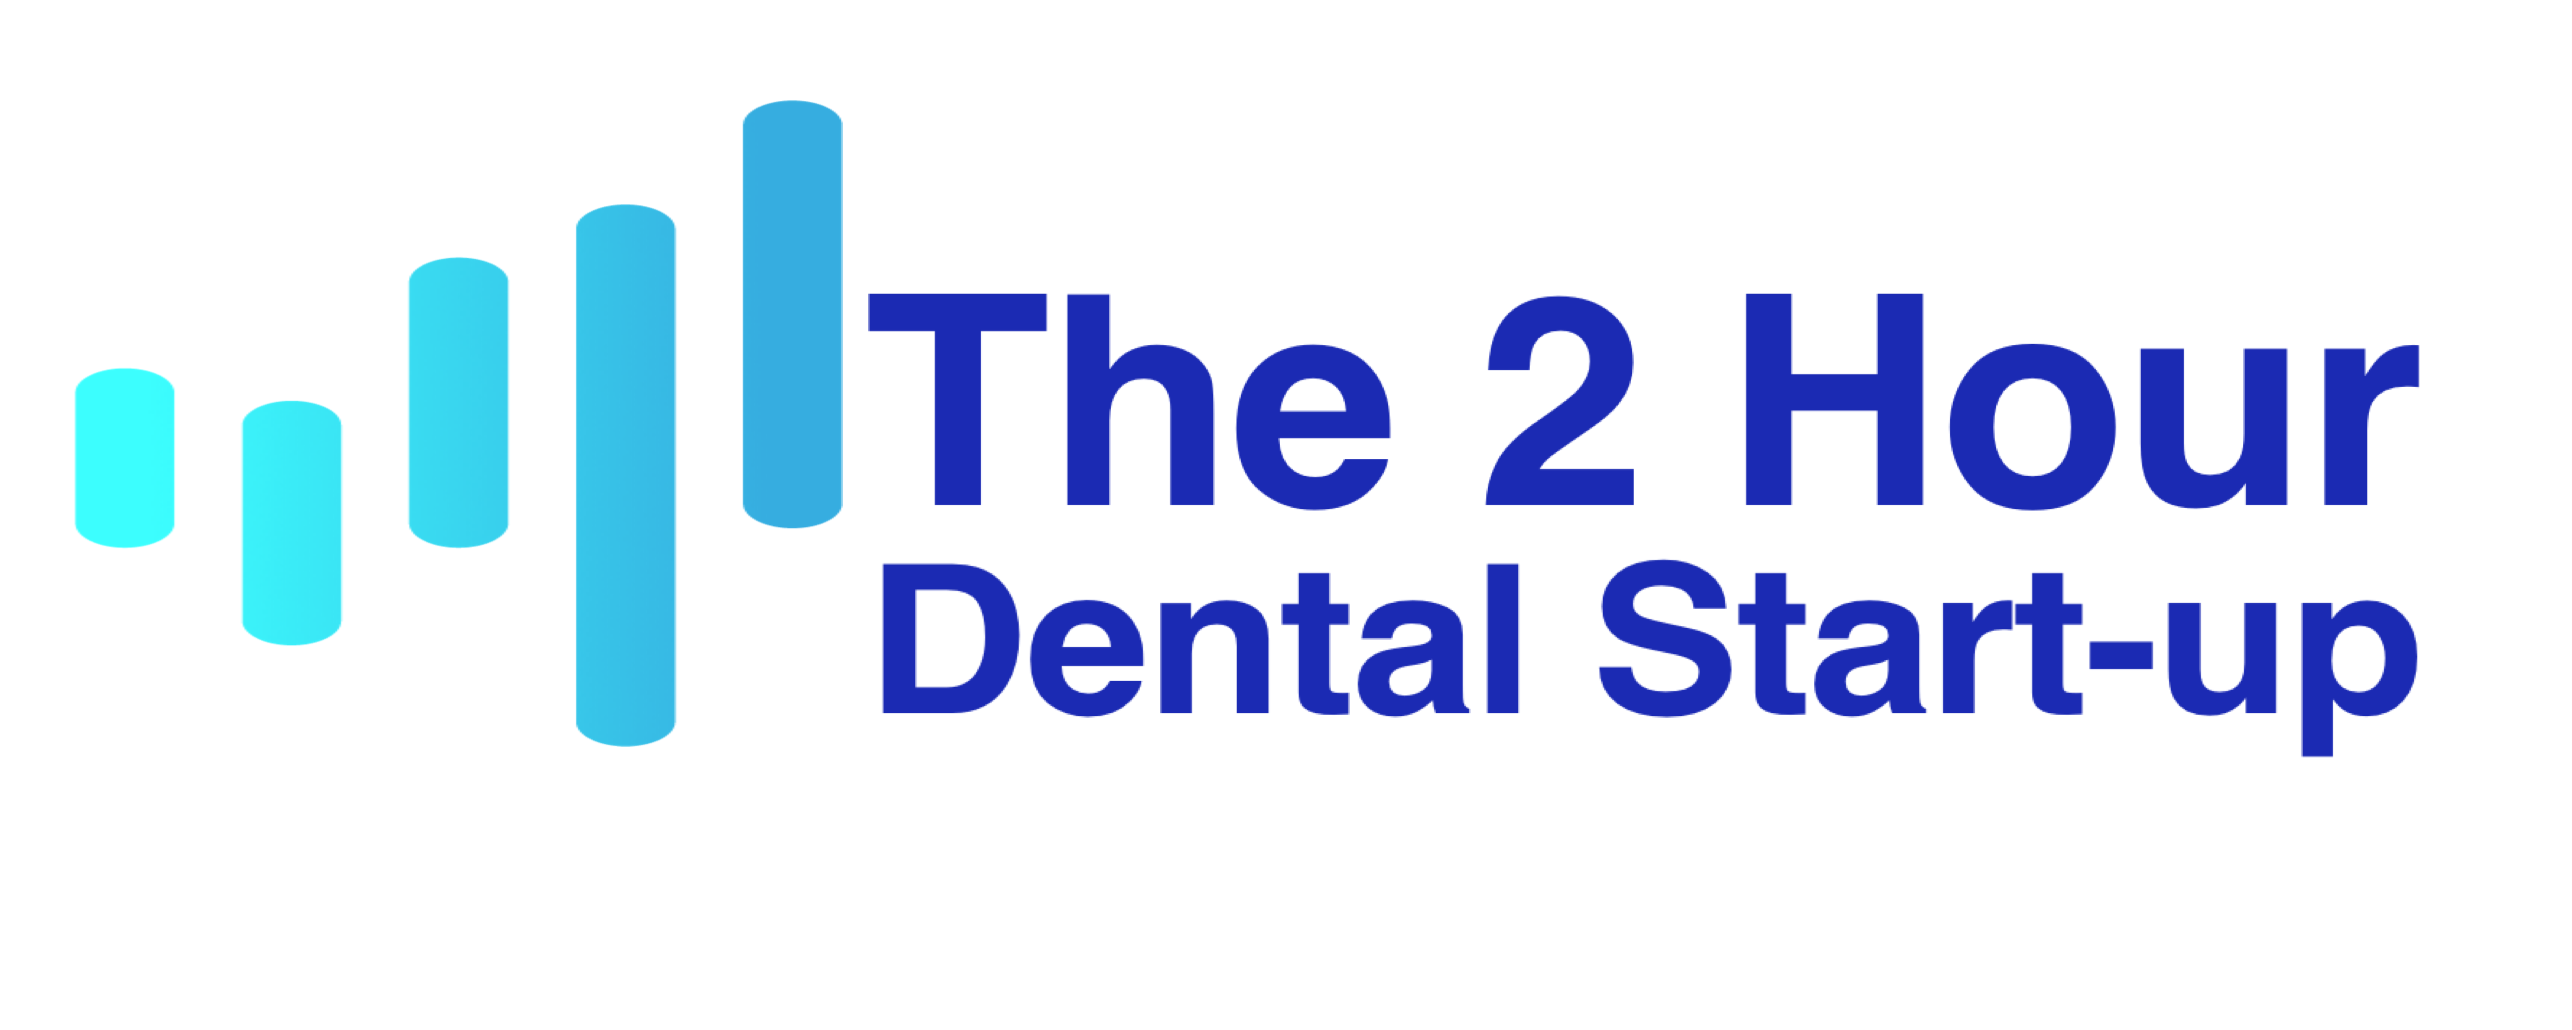 The 2 Hour Dental Start-up